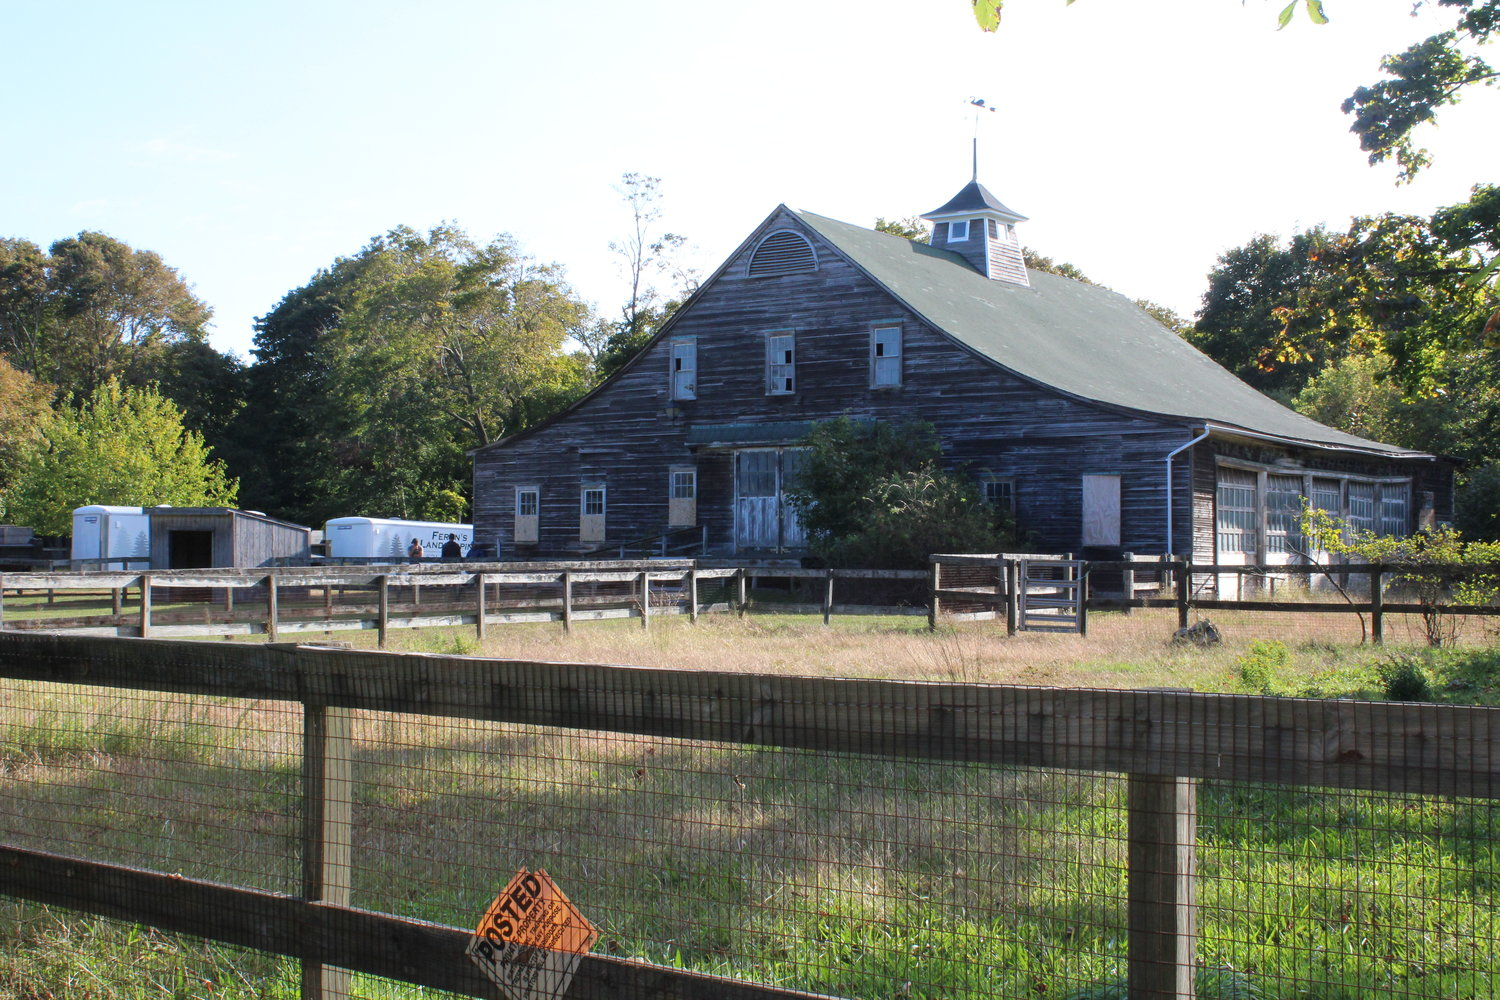 The Avery Homestead barn in East Patchogue is the centerpiece of the East Patchogue property.